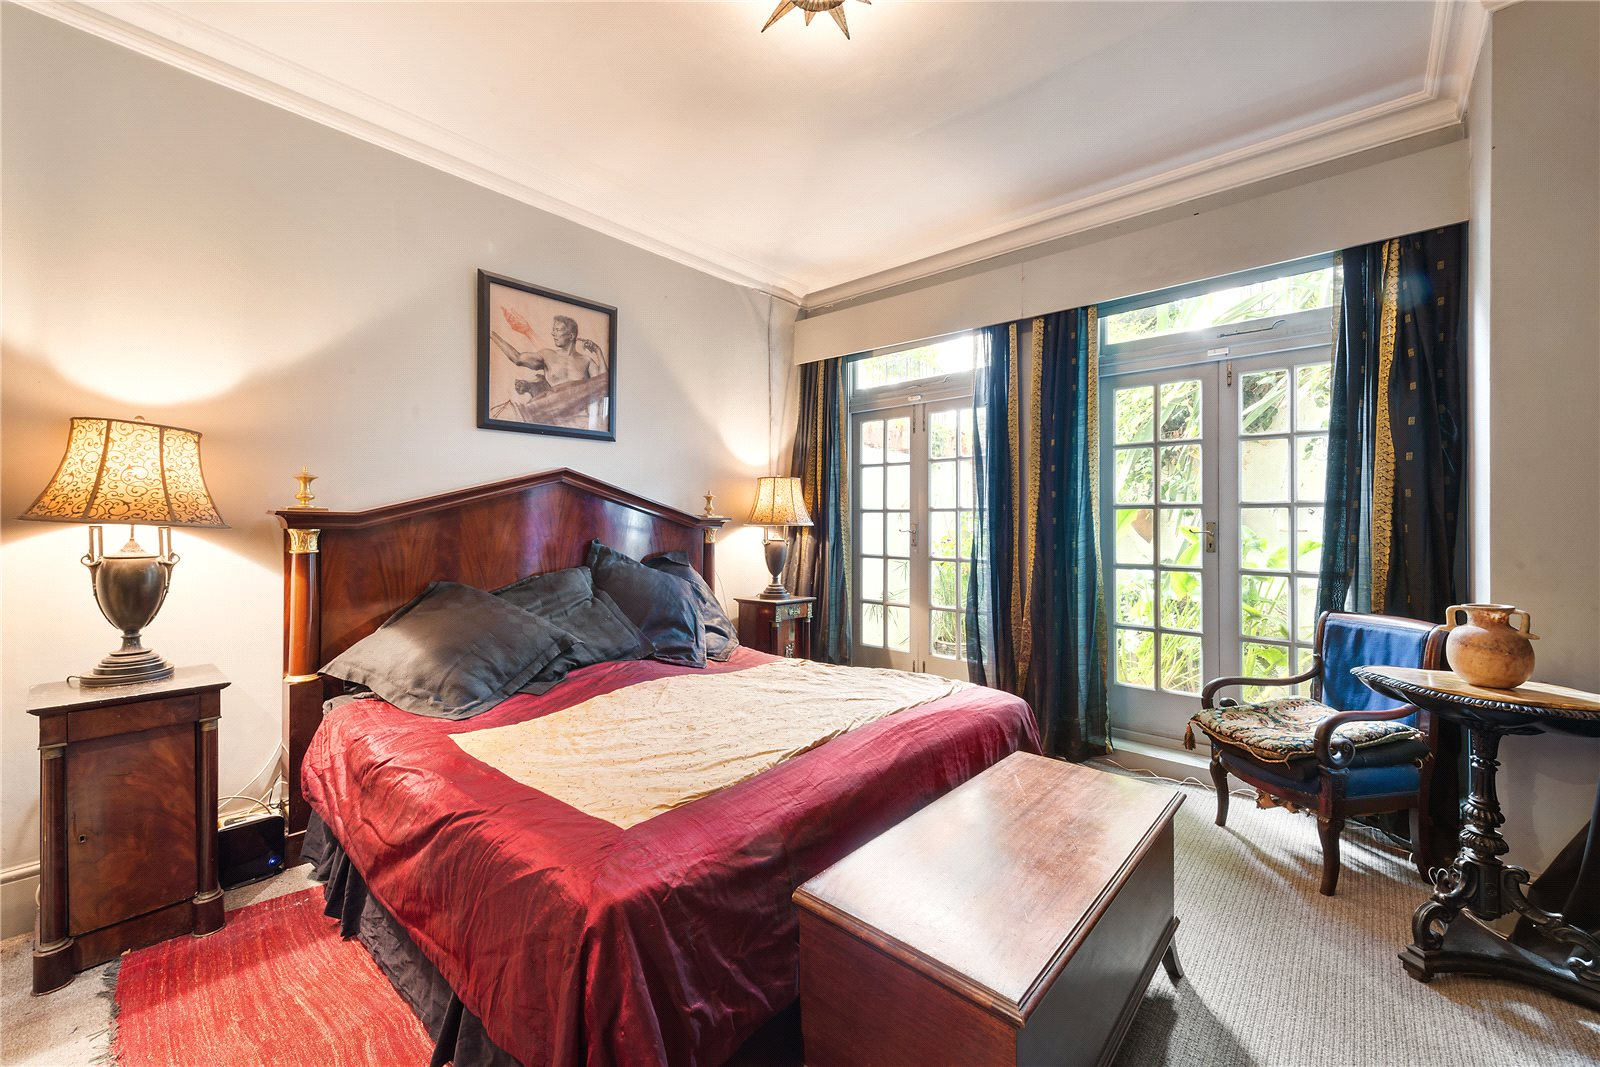 Additional photo for property listing at Wetherby Gardens, South Kensington, London, SW5 South Kensington, London, England